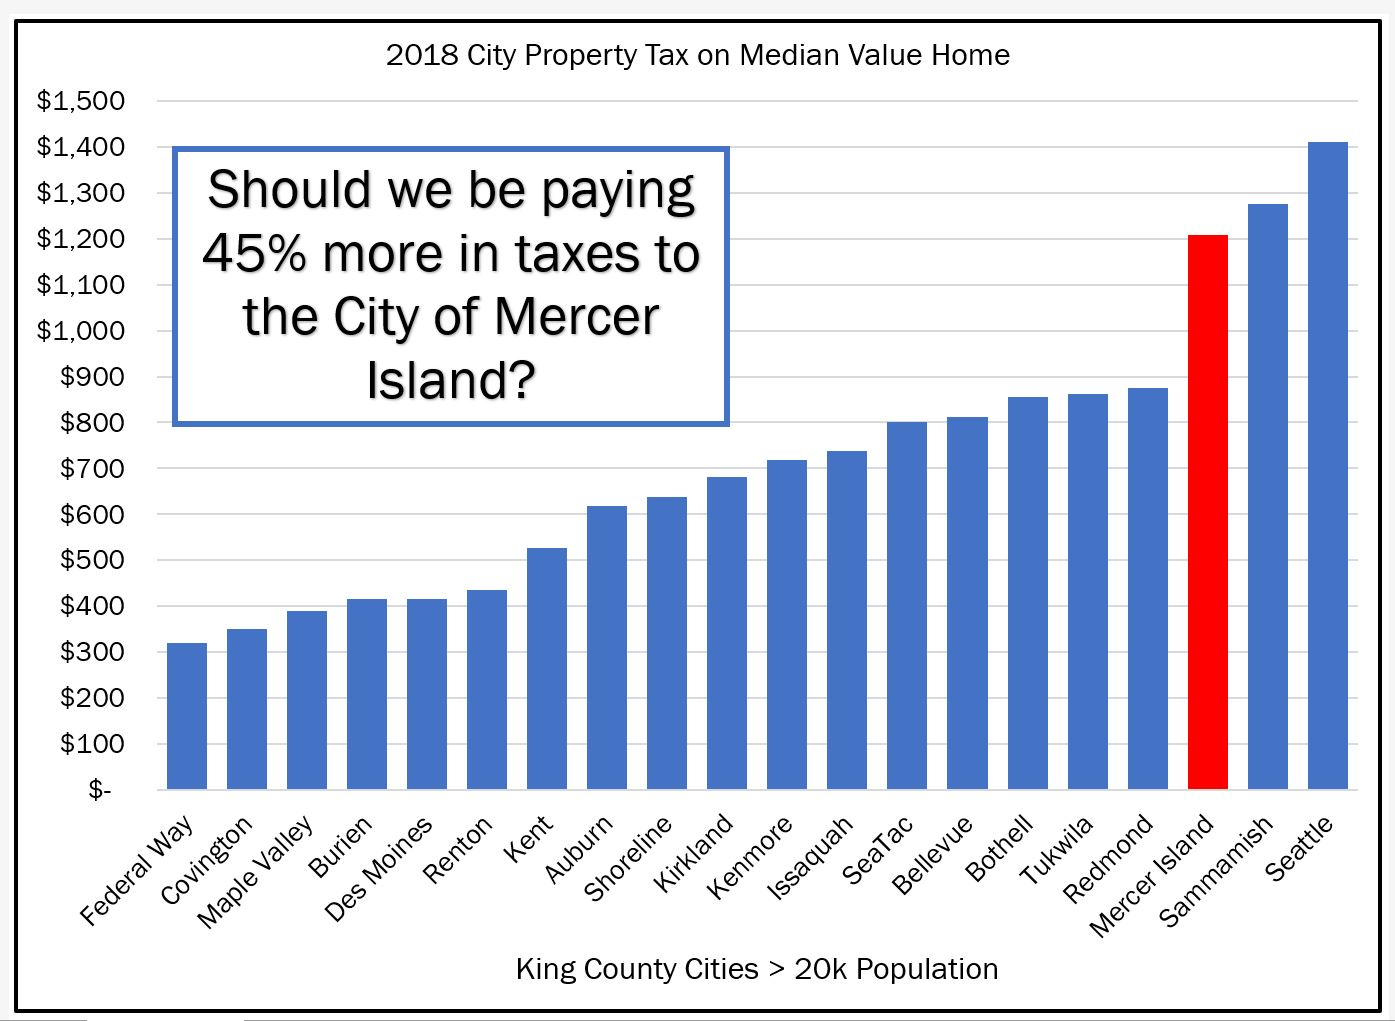 property tax on median value home.JPG